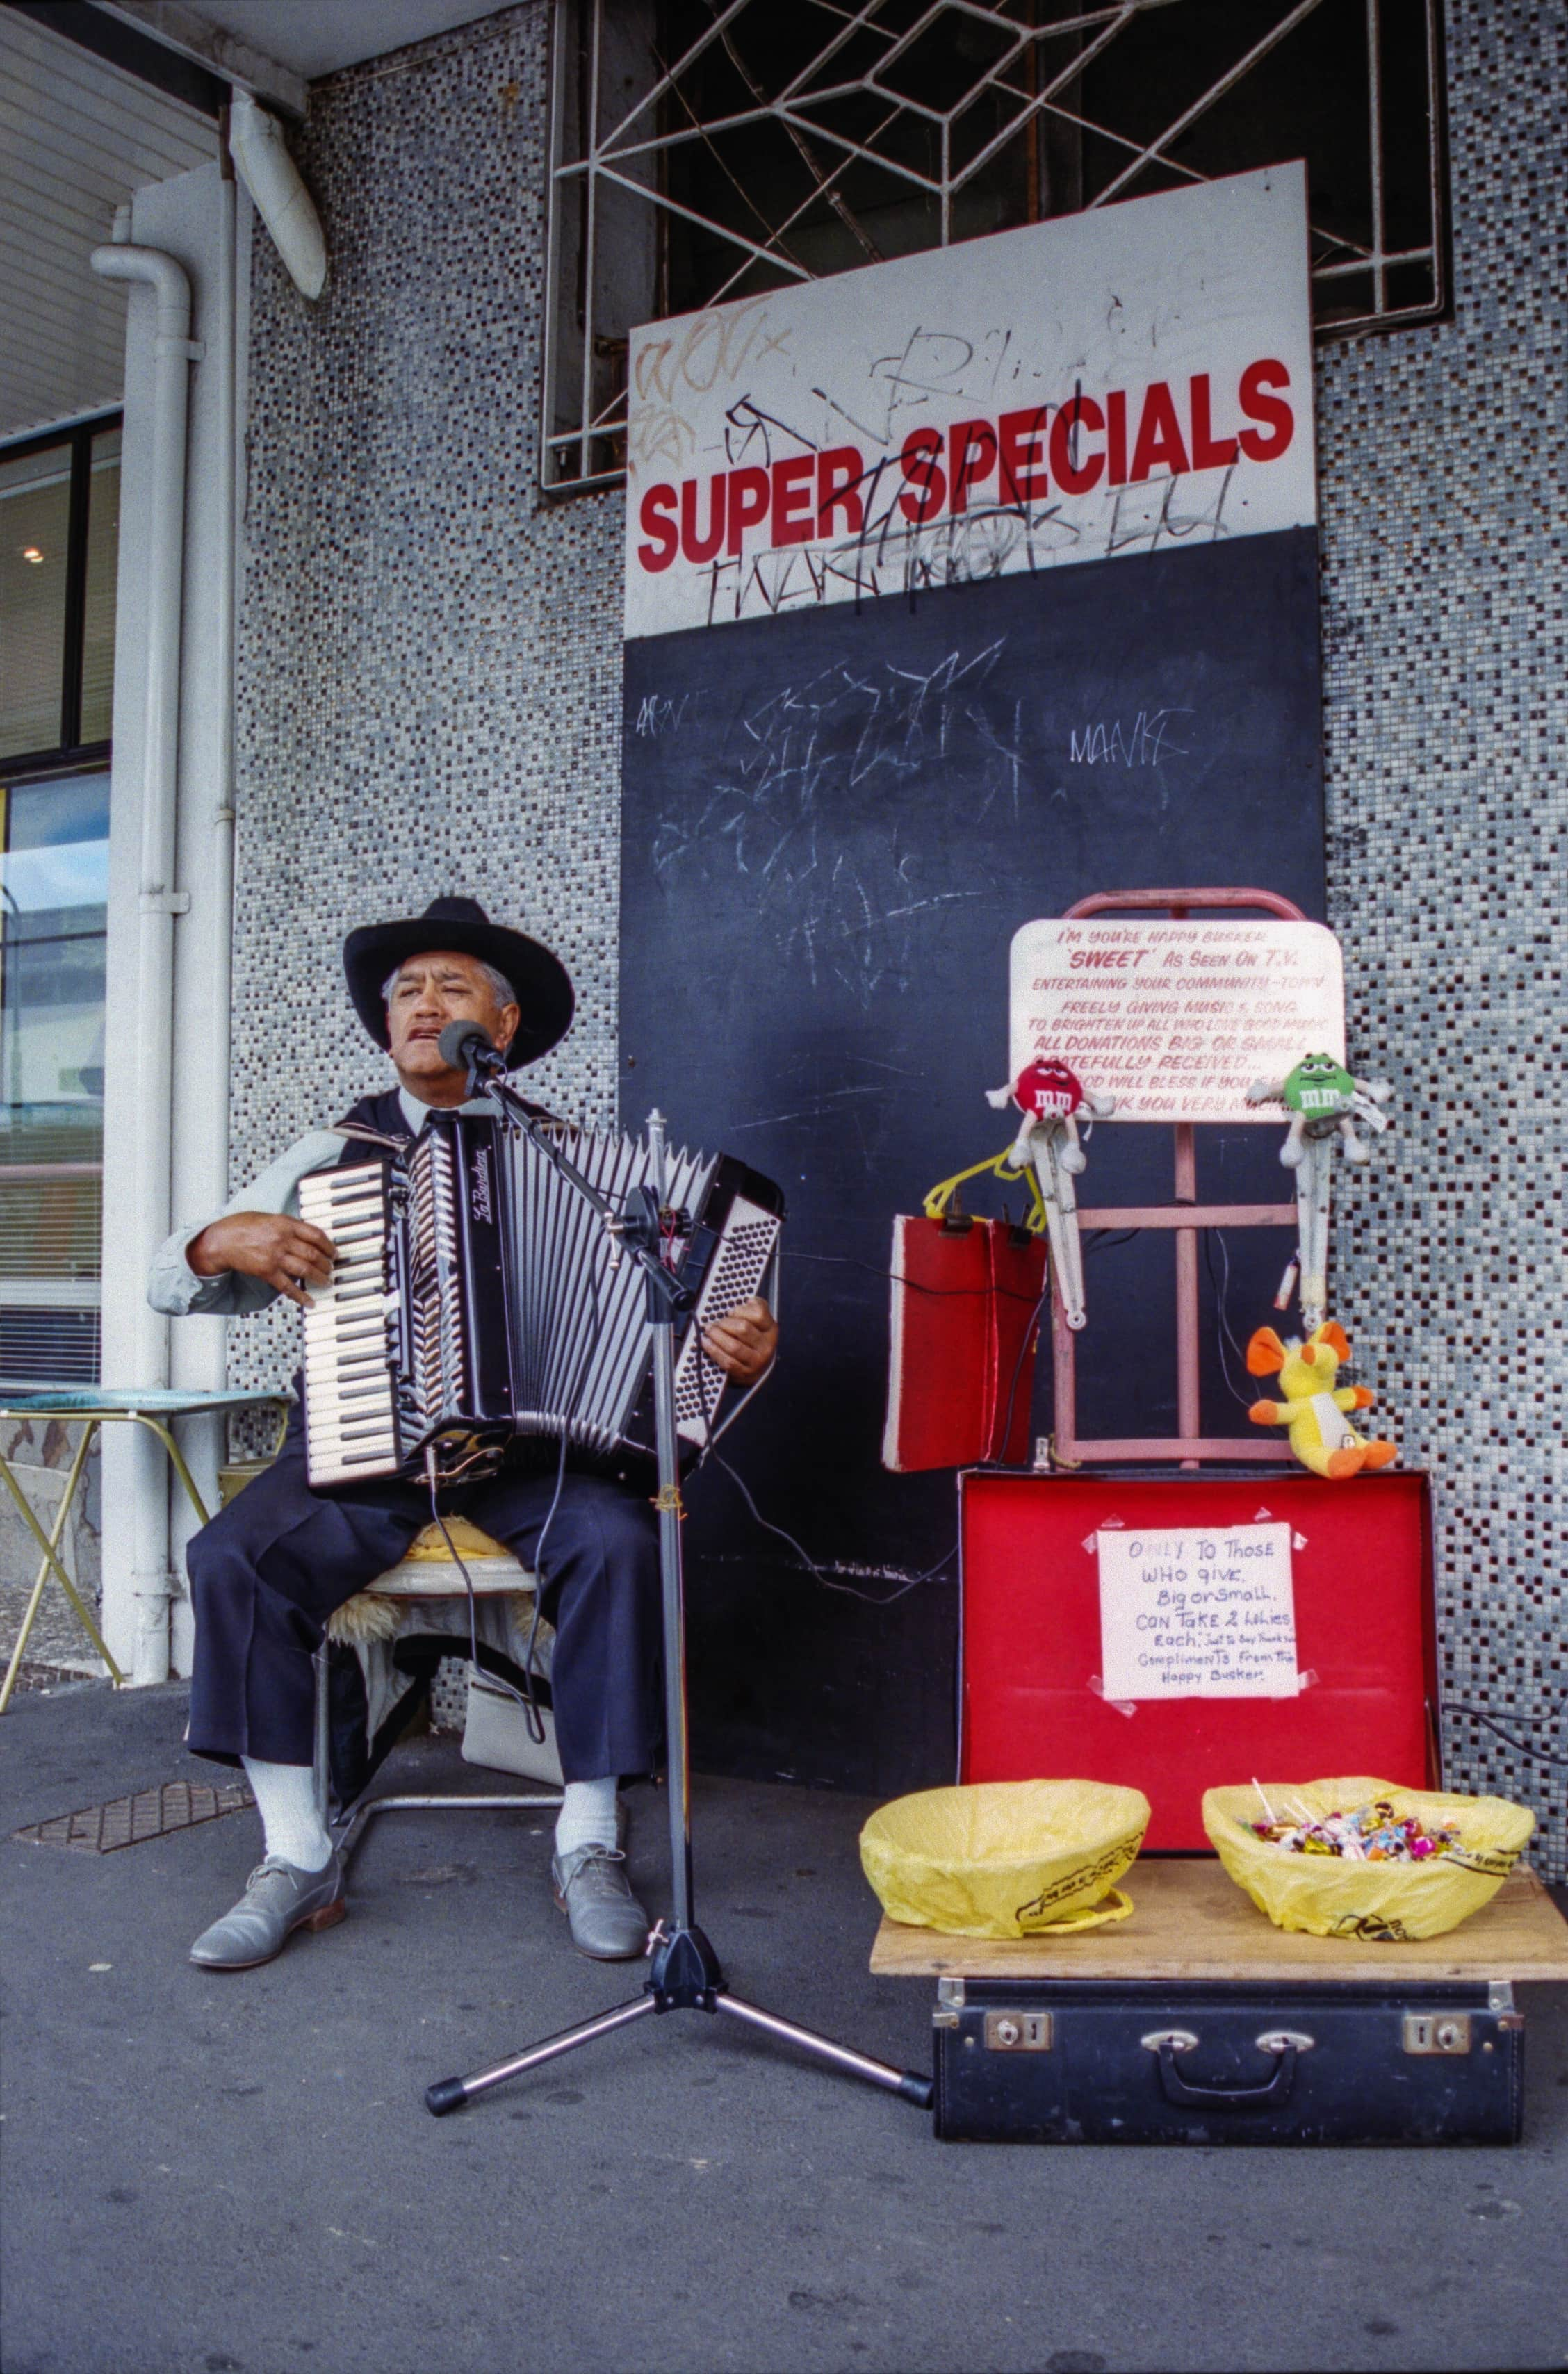 Busker Onehunga Mall. Photo credit: Stjohn Milgrew. 2002.